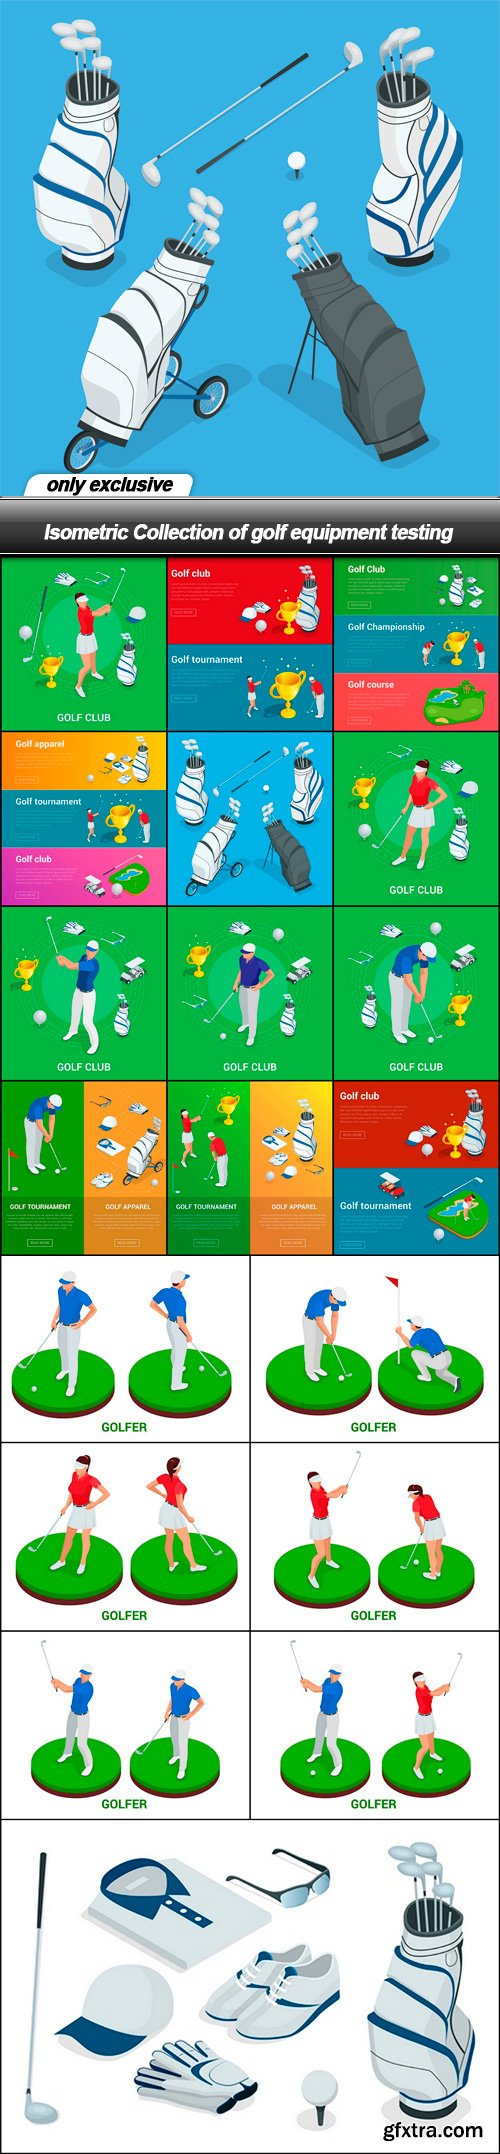 Isometric Collection of golf equipment testing - 19 EPS